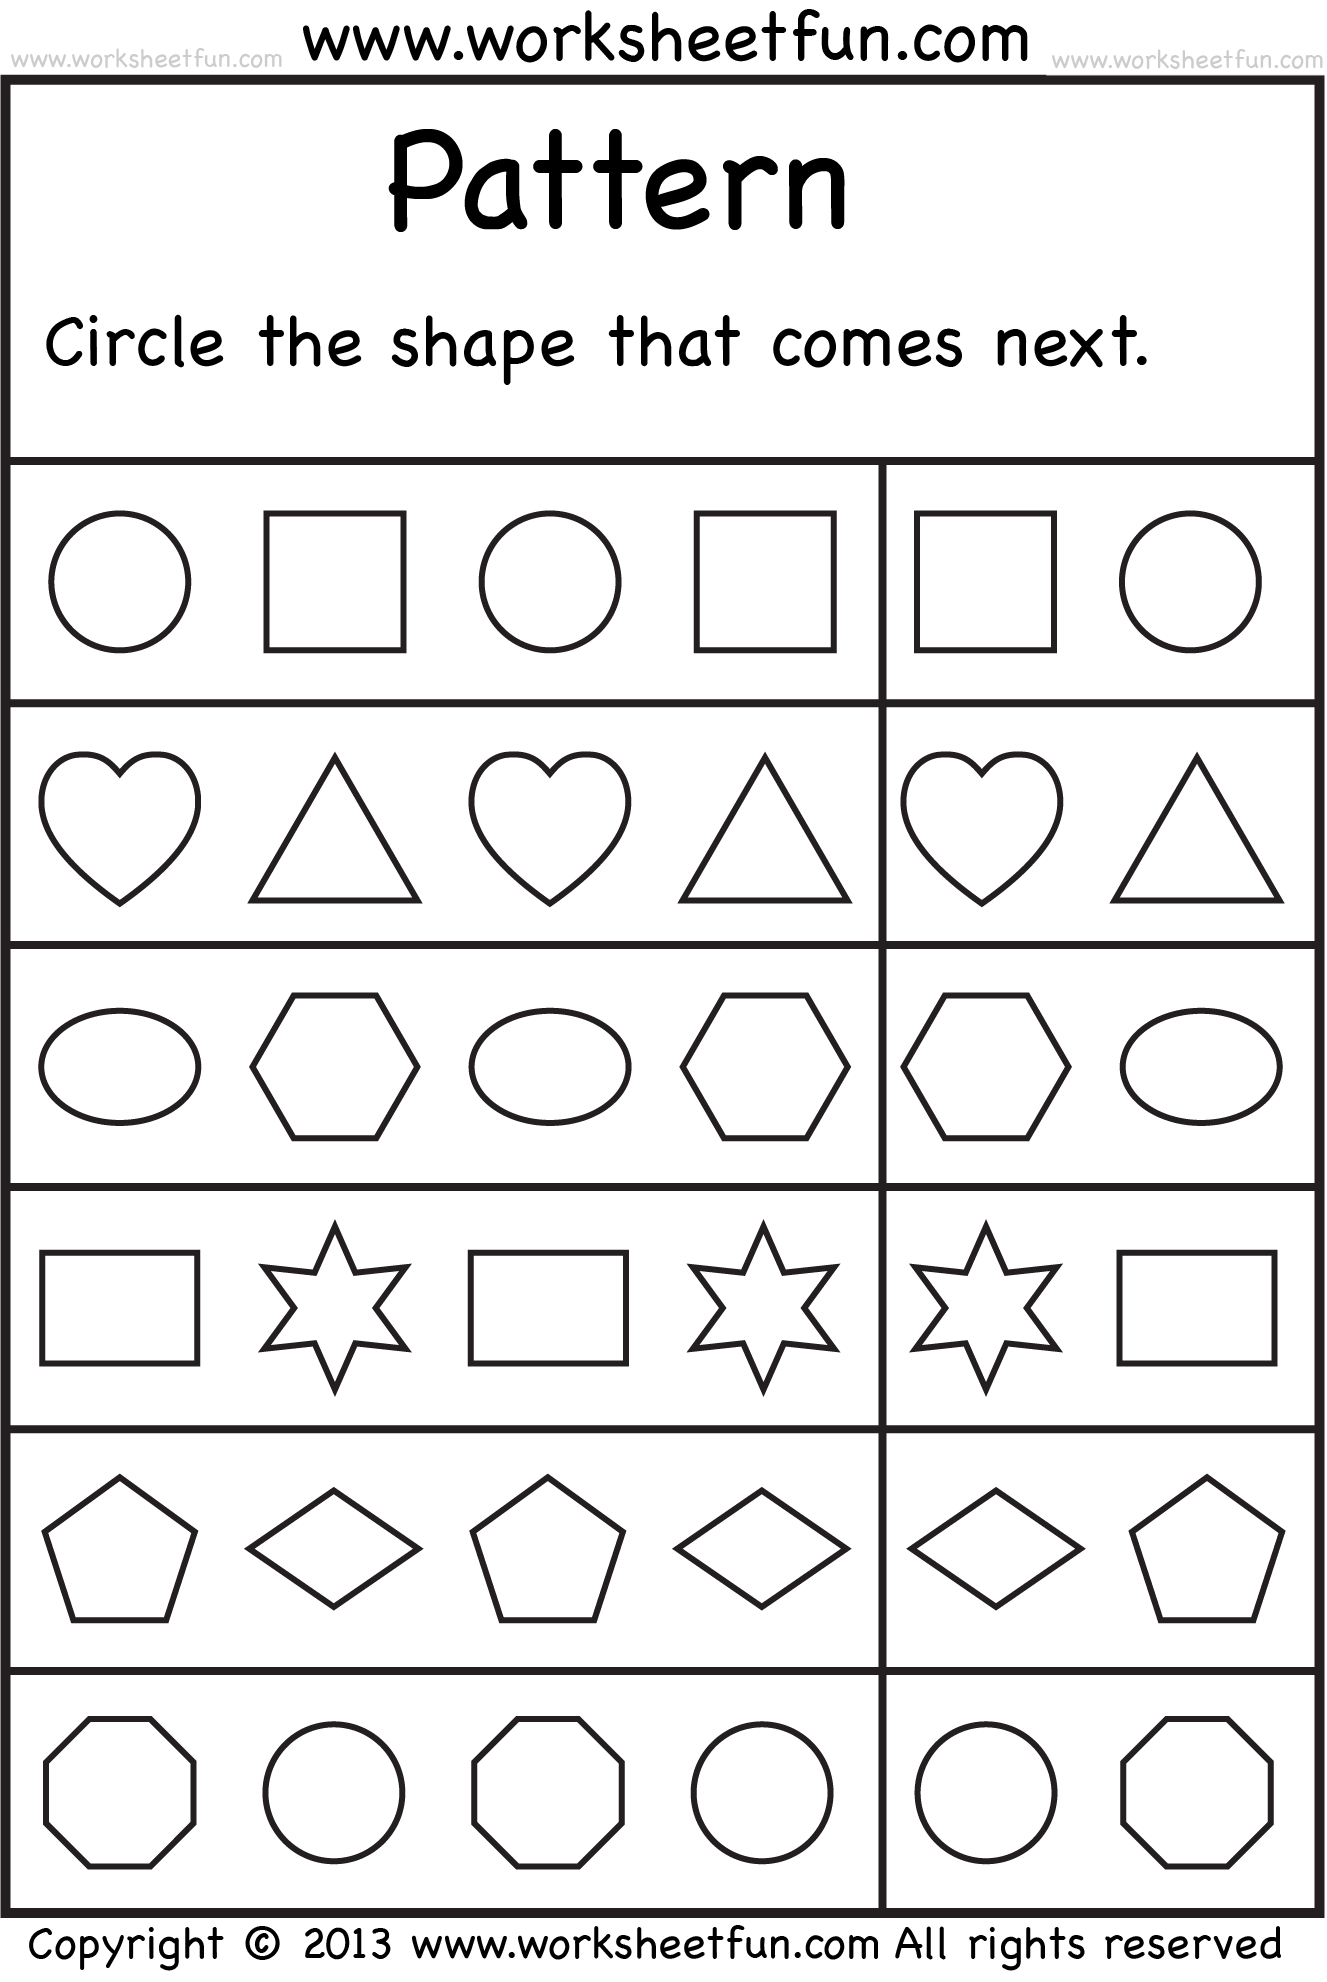 Weirdmailus  Wonderful  Images About School Worksheets On Pinterest  Number Words  With Outstanding  Images About School Worksheets On Pinterest  Number Words Alphabet Worksheets And Free Printable Kindergarten Worksheets With Amazing Printable Budgeting Worksheets Also Counting  Worksheets In Addition Free Probability Worksheets And Reading A Metric Ruler Worksheet As Well As Writing Worksheets Kindergarten Additionally College Grammar Worksheets From Pinterestcom With Weirdmailus  Outstanding  Images About School Worksheets On Pinterest  Number Words  With Amazing  Images About School Worksheets On Pinterest  Number Words Alphabet Worksheets And Free Printable Kindergarten Worksheets And Wonderful Printable Budgeting Worksheets Also Counting  Worksheets In Addition Free Probability Worksheets From Pinterestcom